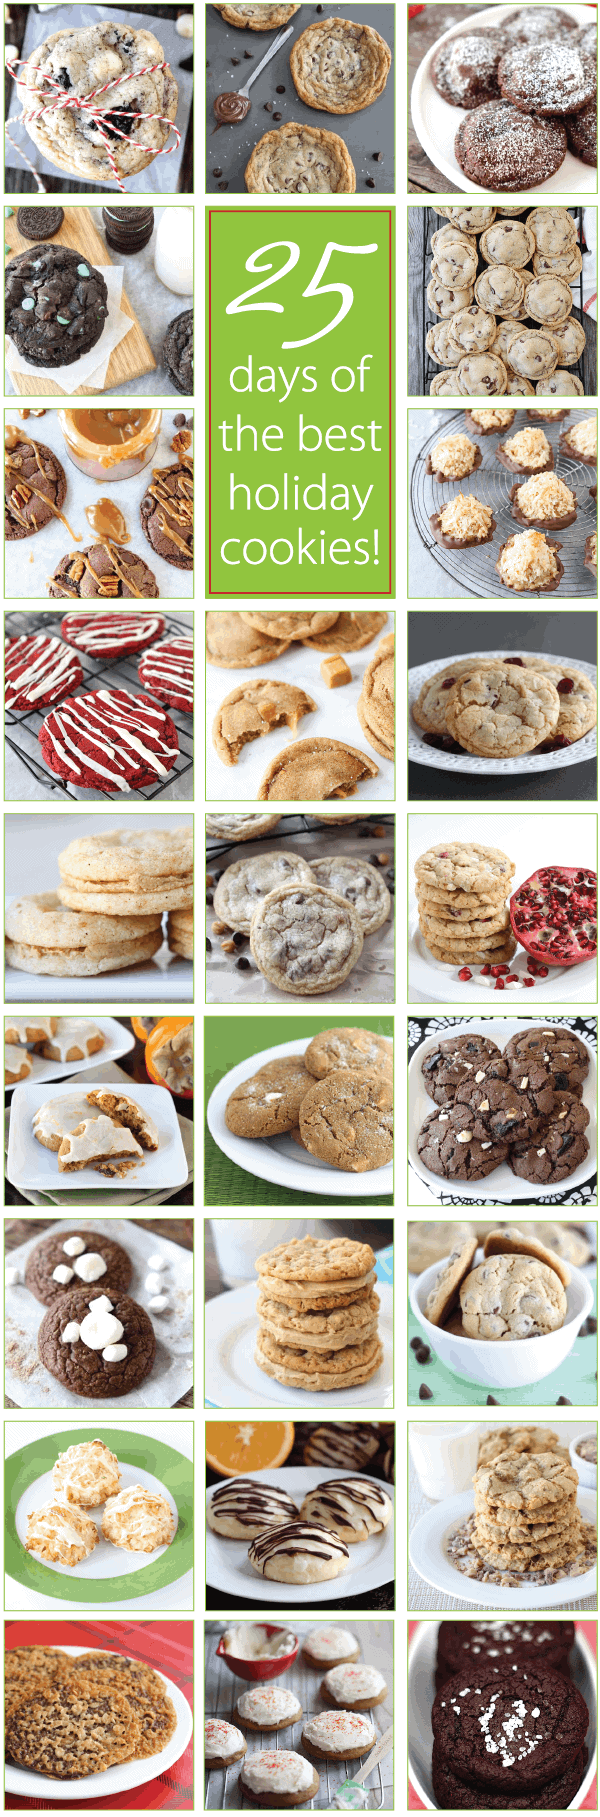 25 Days of the BEST Holiday Cookie Recipes on twopeasandtheirpod.com ...